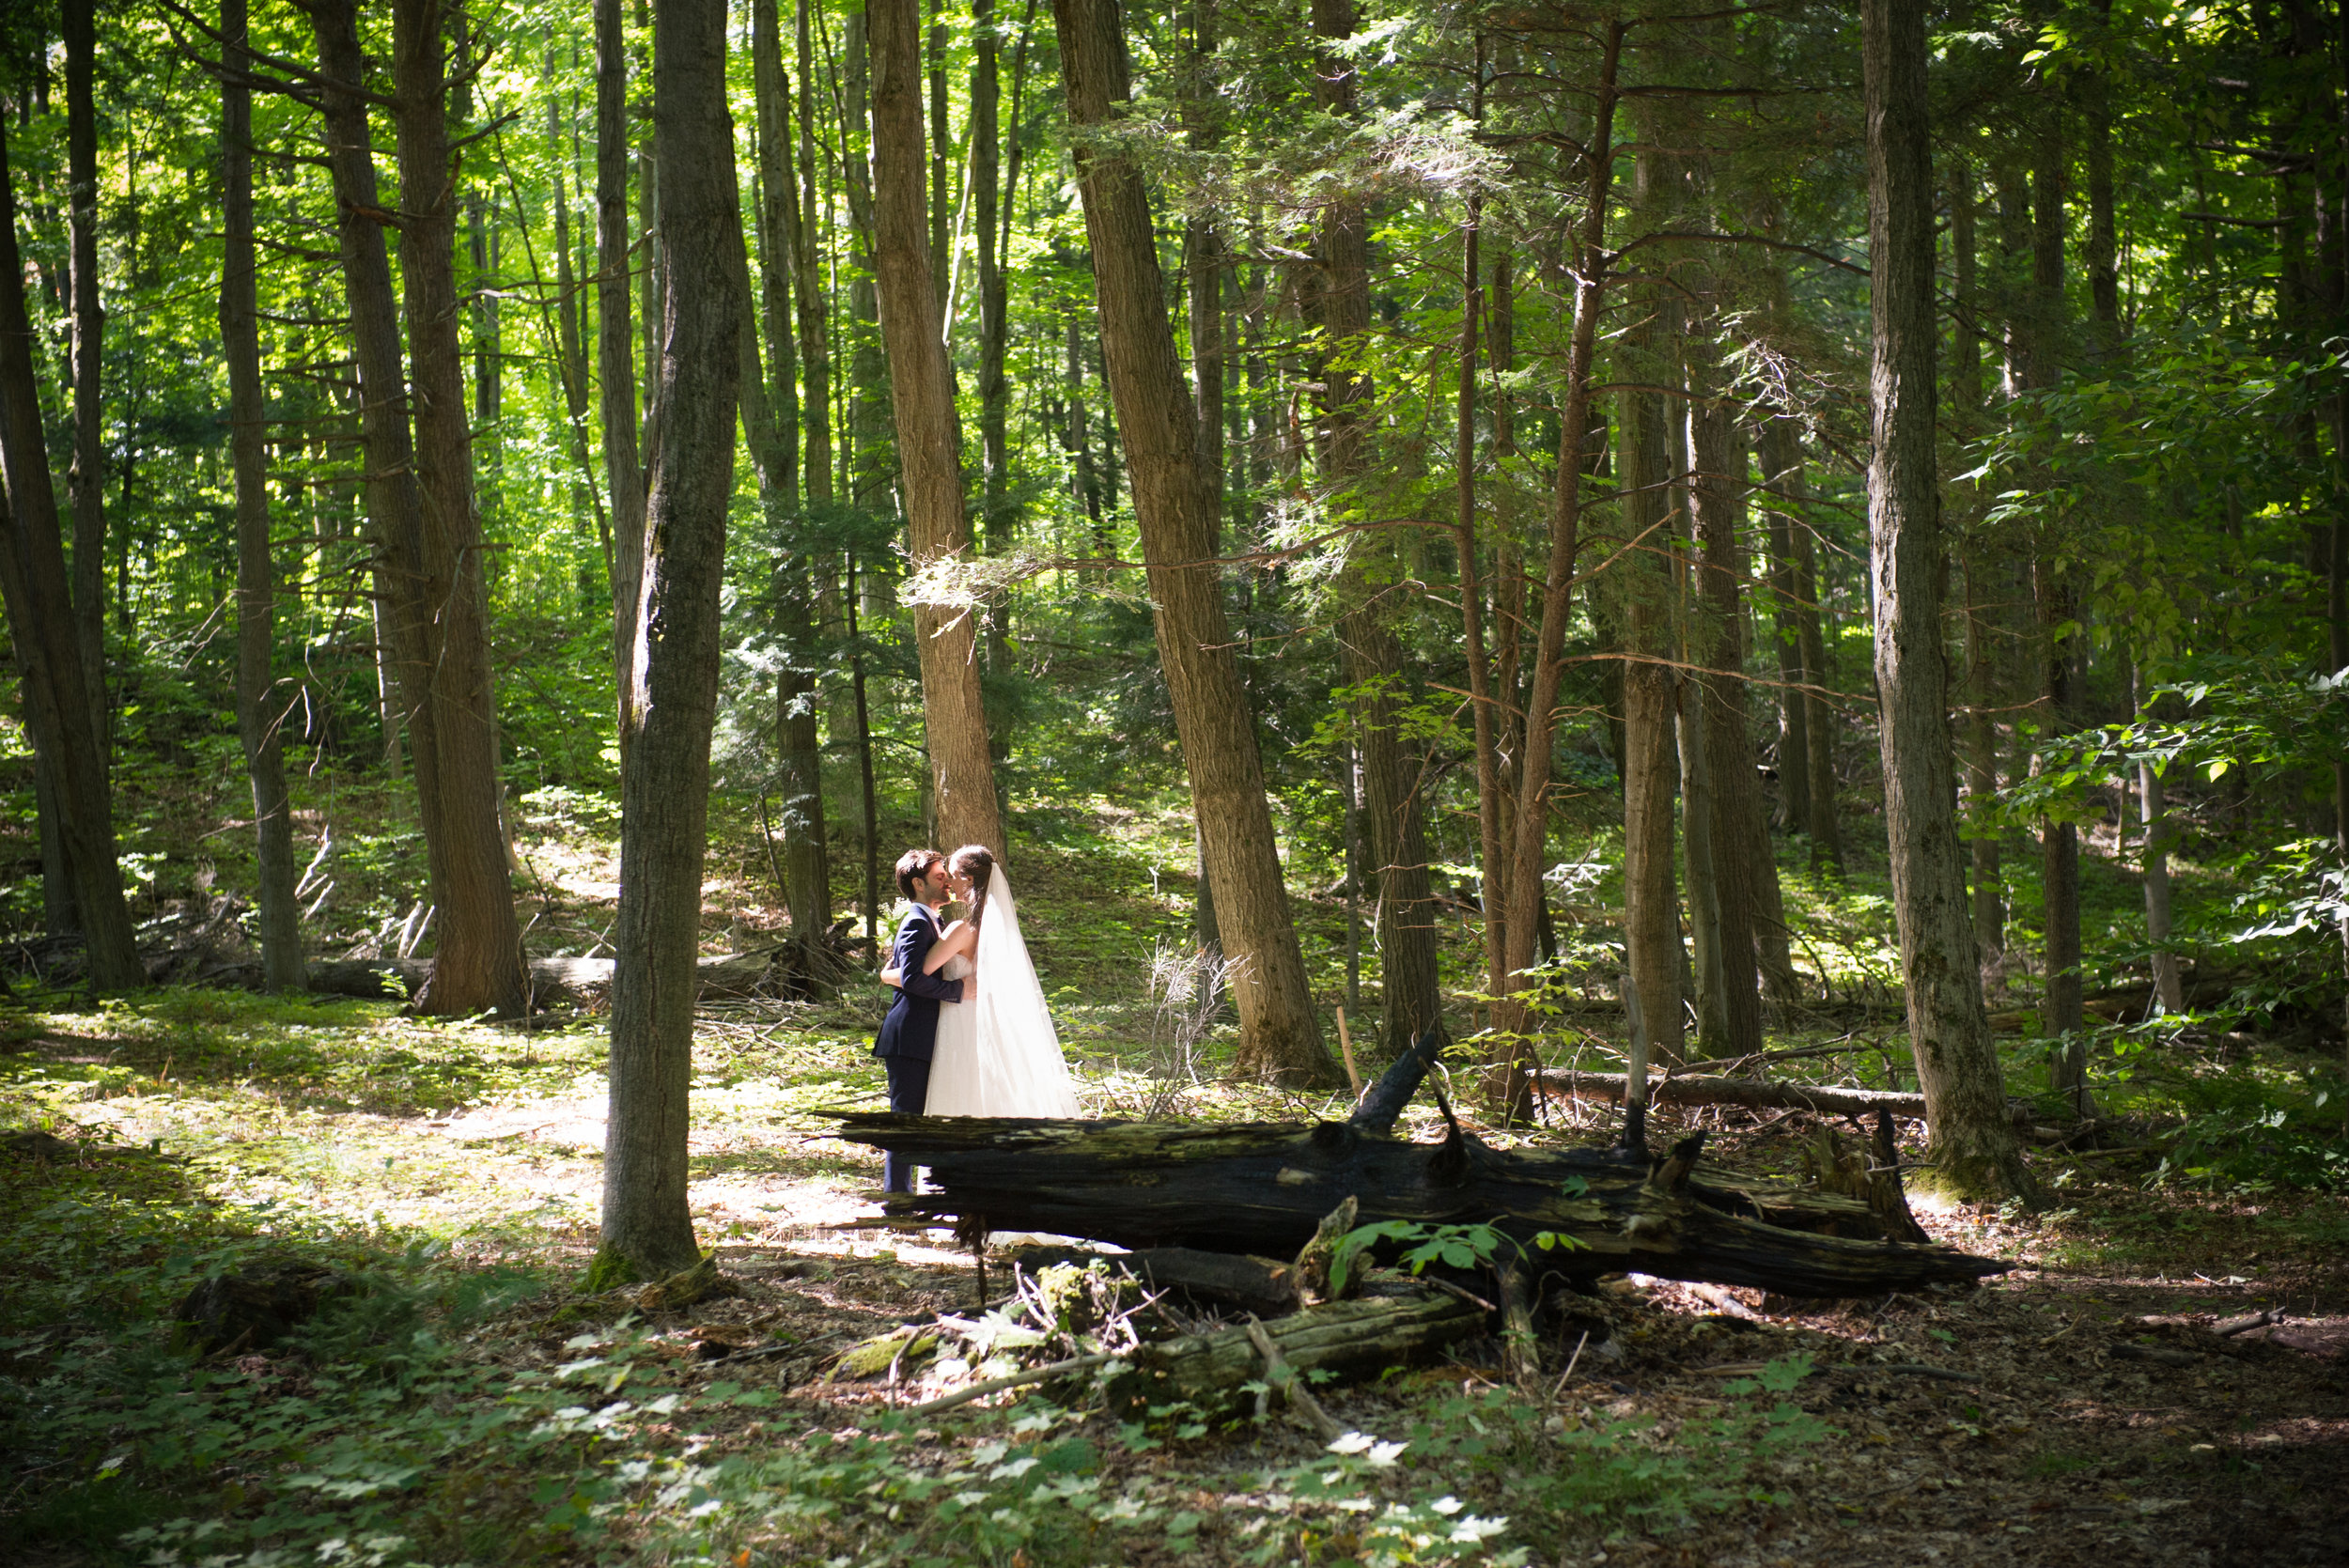 The bride and the groom in the forest. // Wedding photos by Karmel Kreative // Plant Based Bride